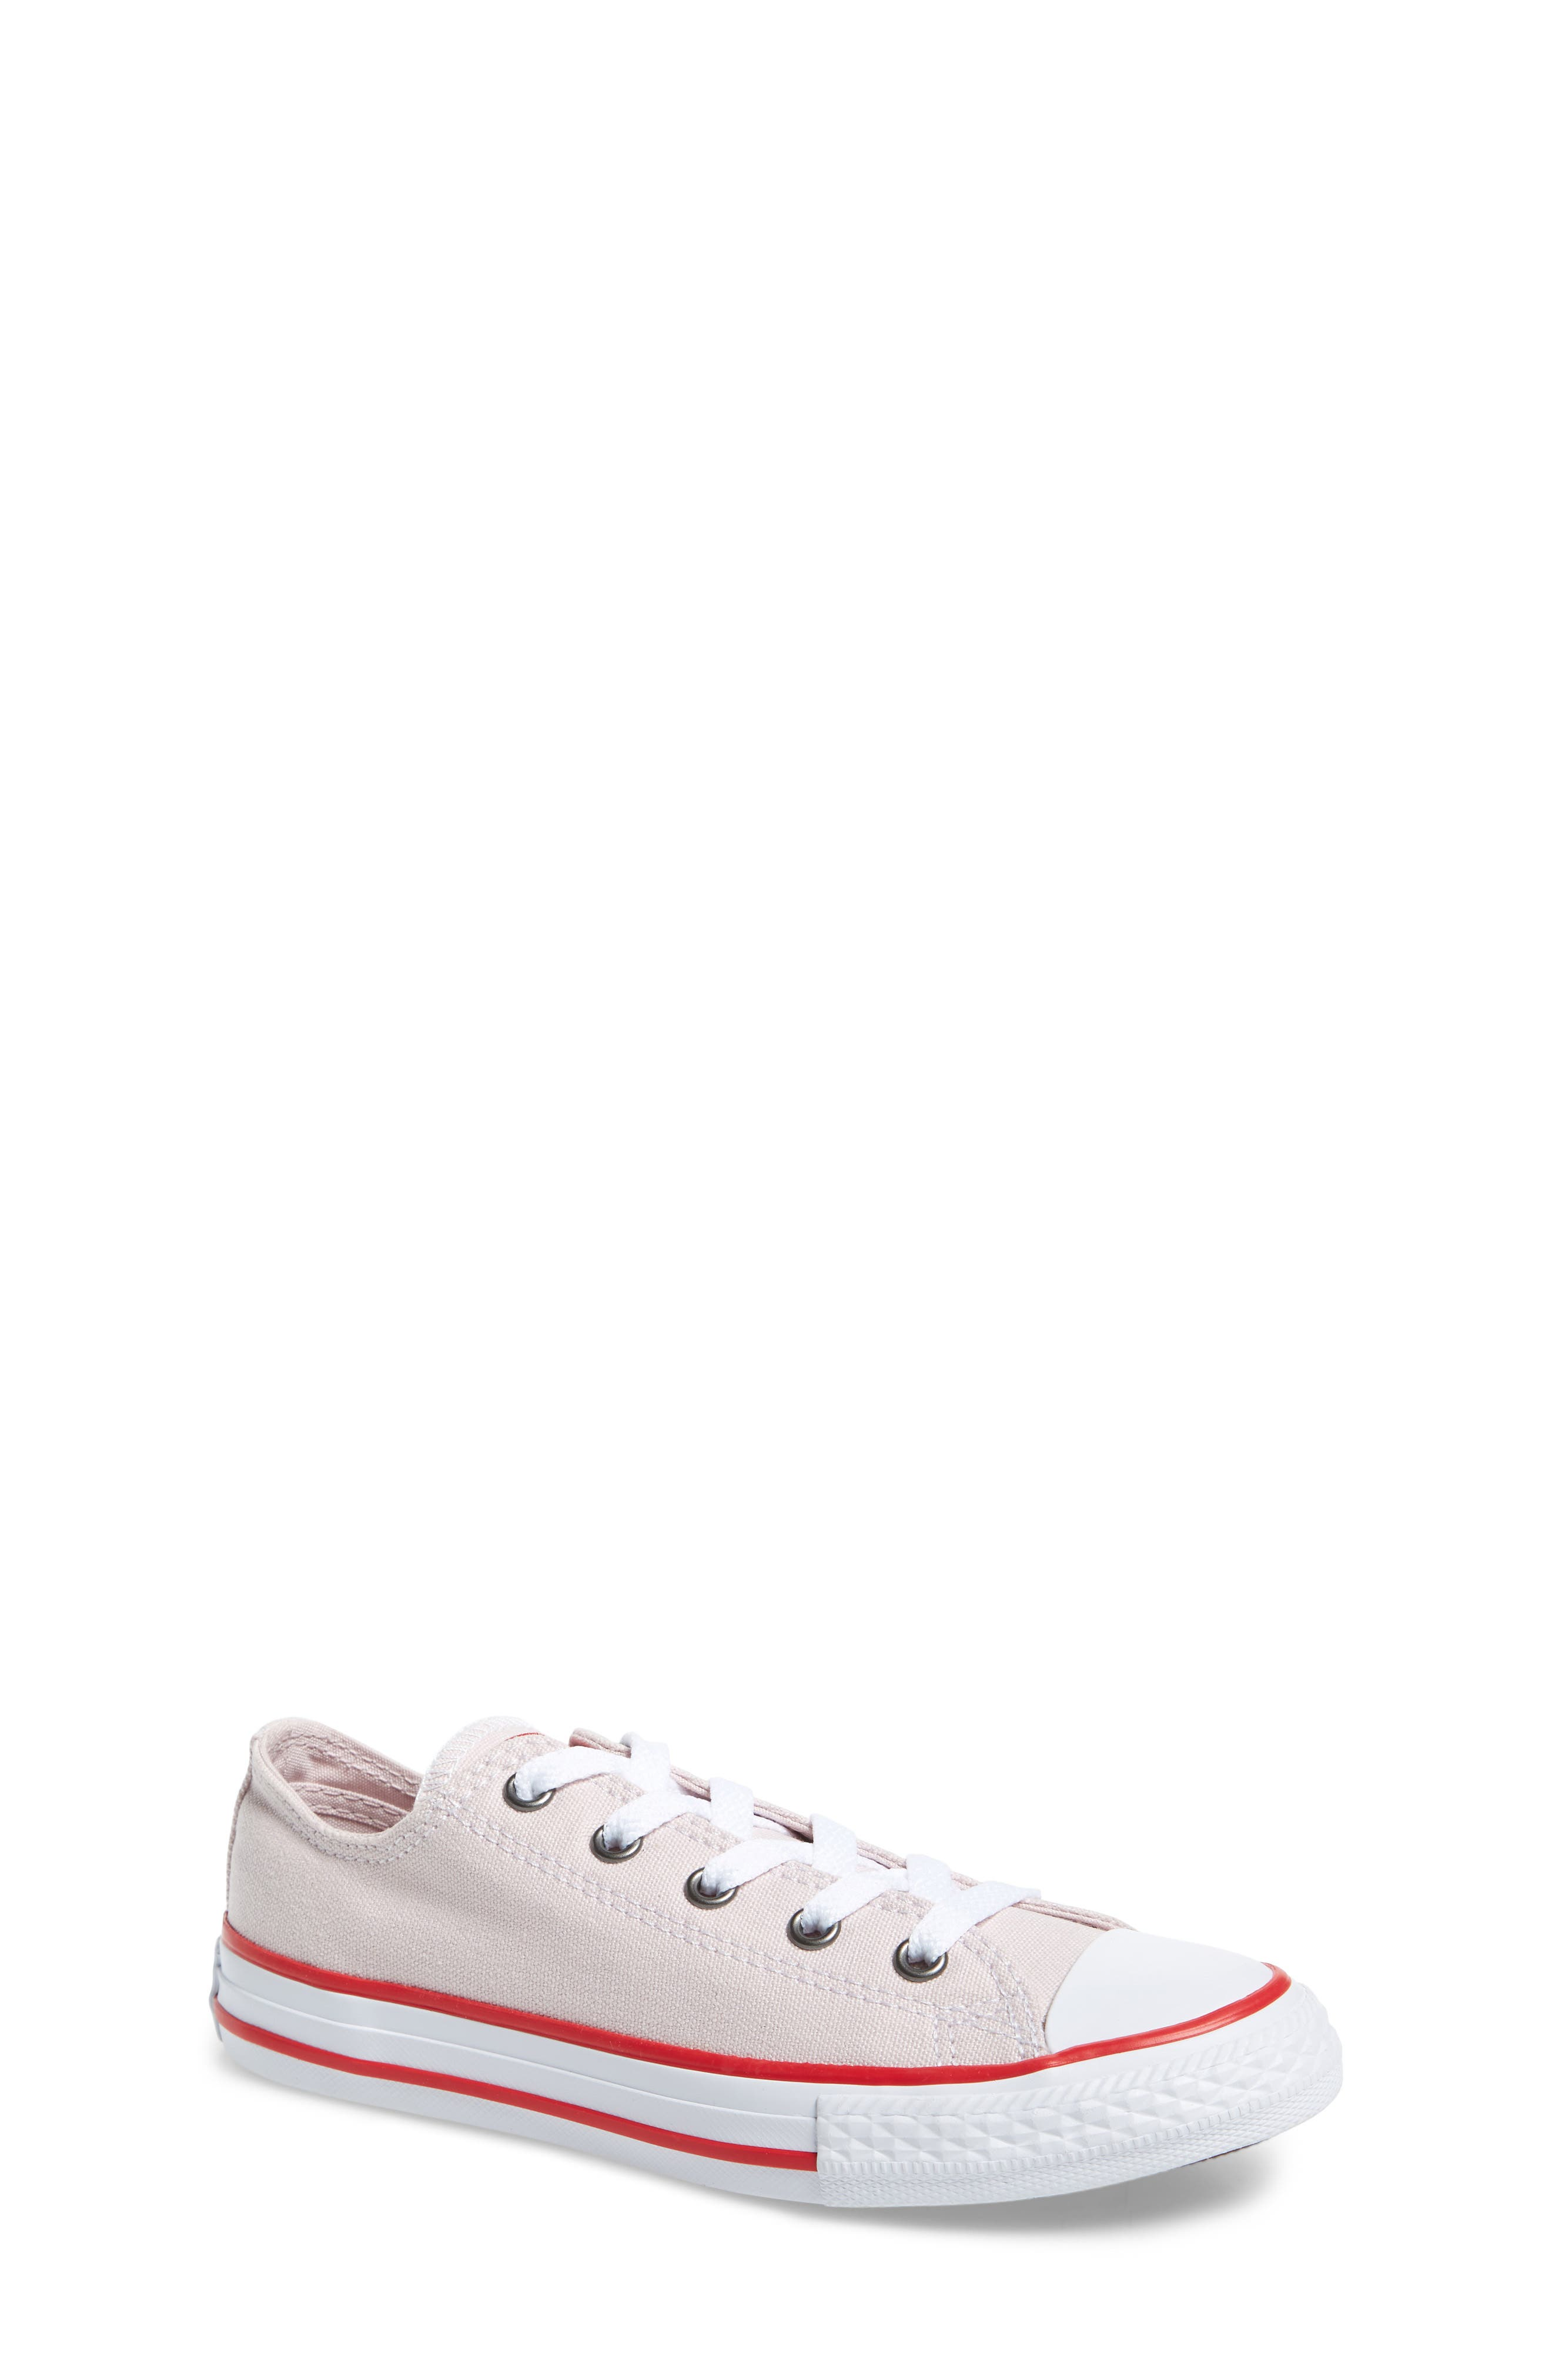 Chuck Taylor<sup>®</sup> All Star<sup>®</sup> Low Top Sneaker,                             Main thumbnail 2, color,